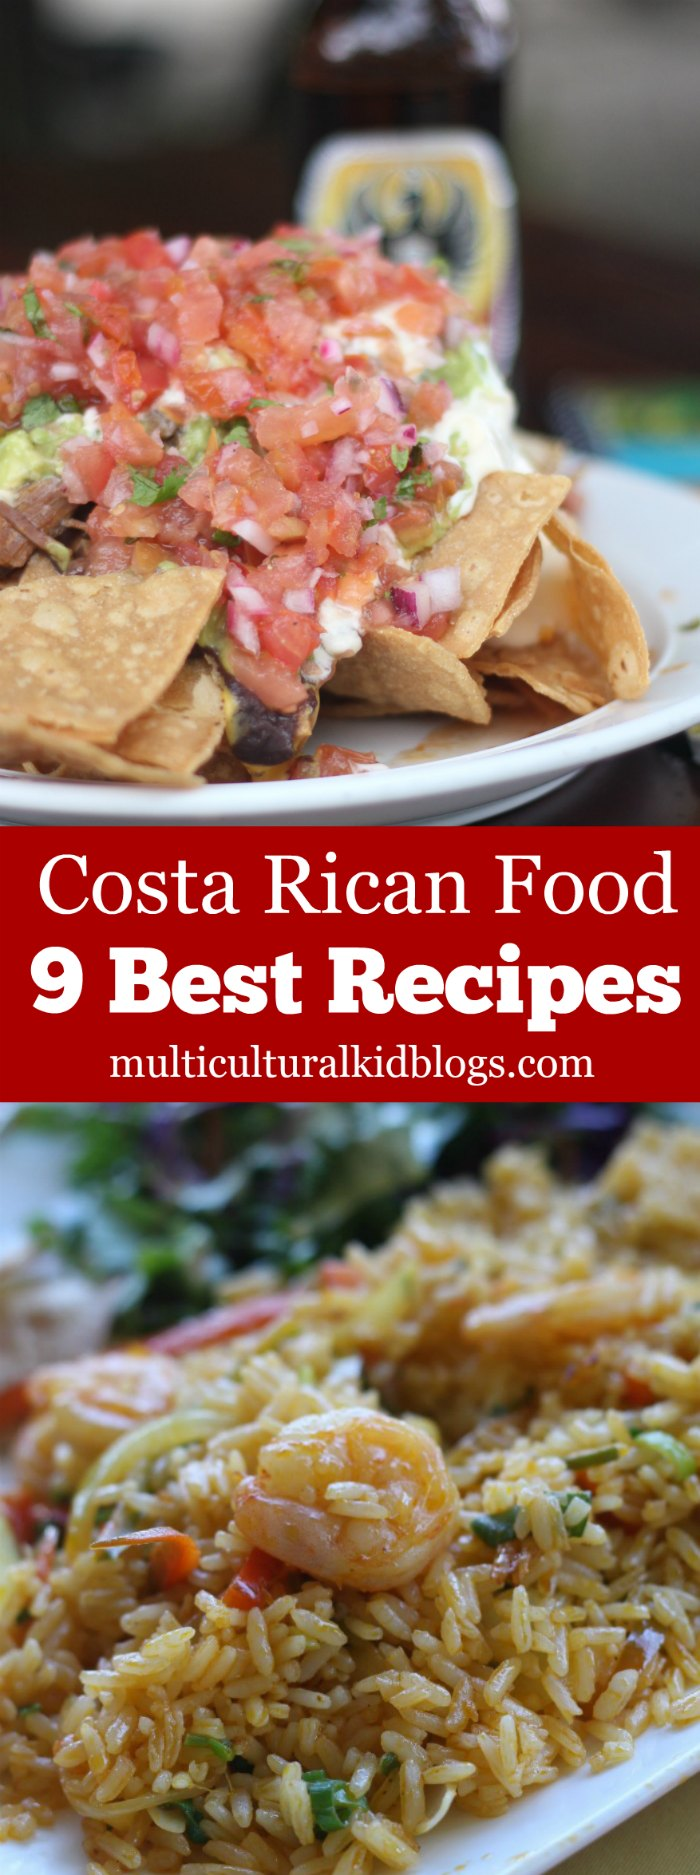 9 Costa Rican Food Recipes